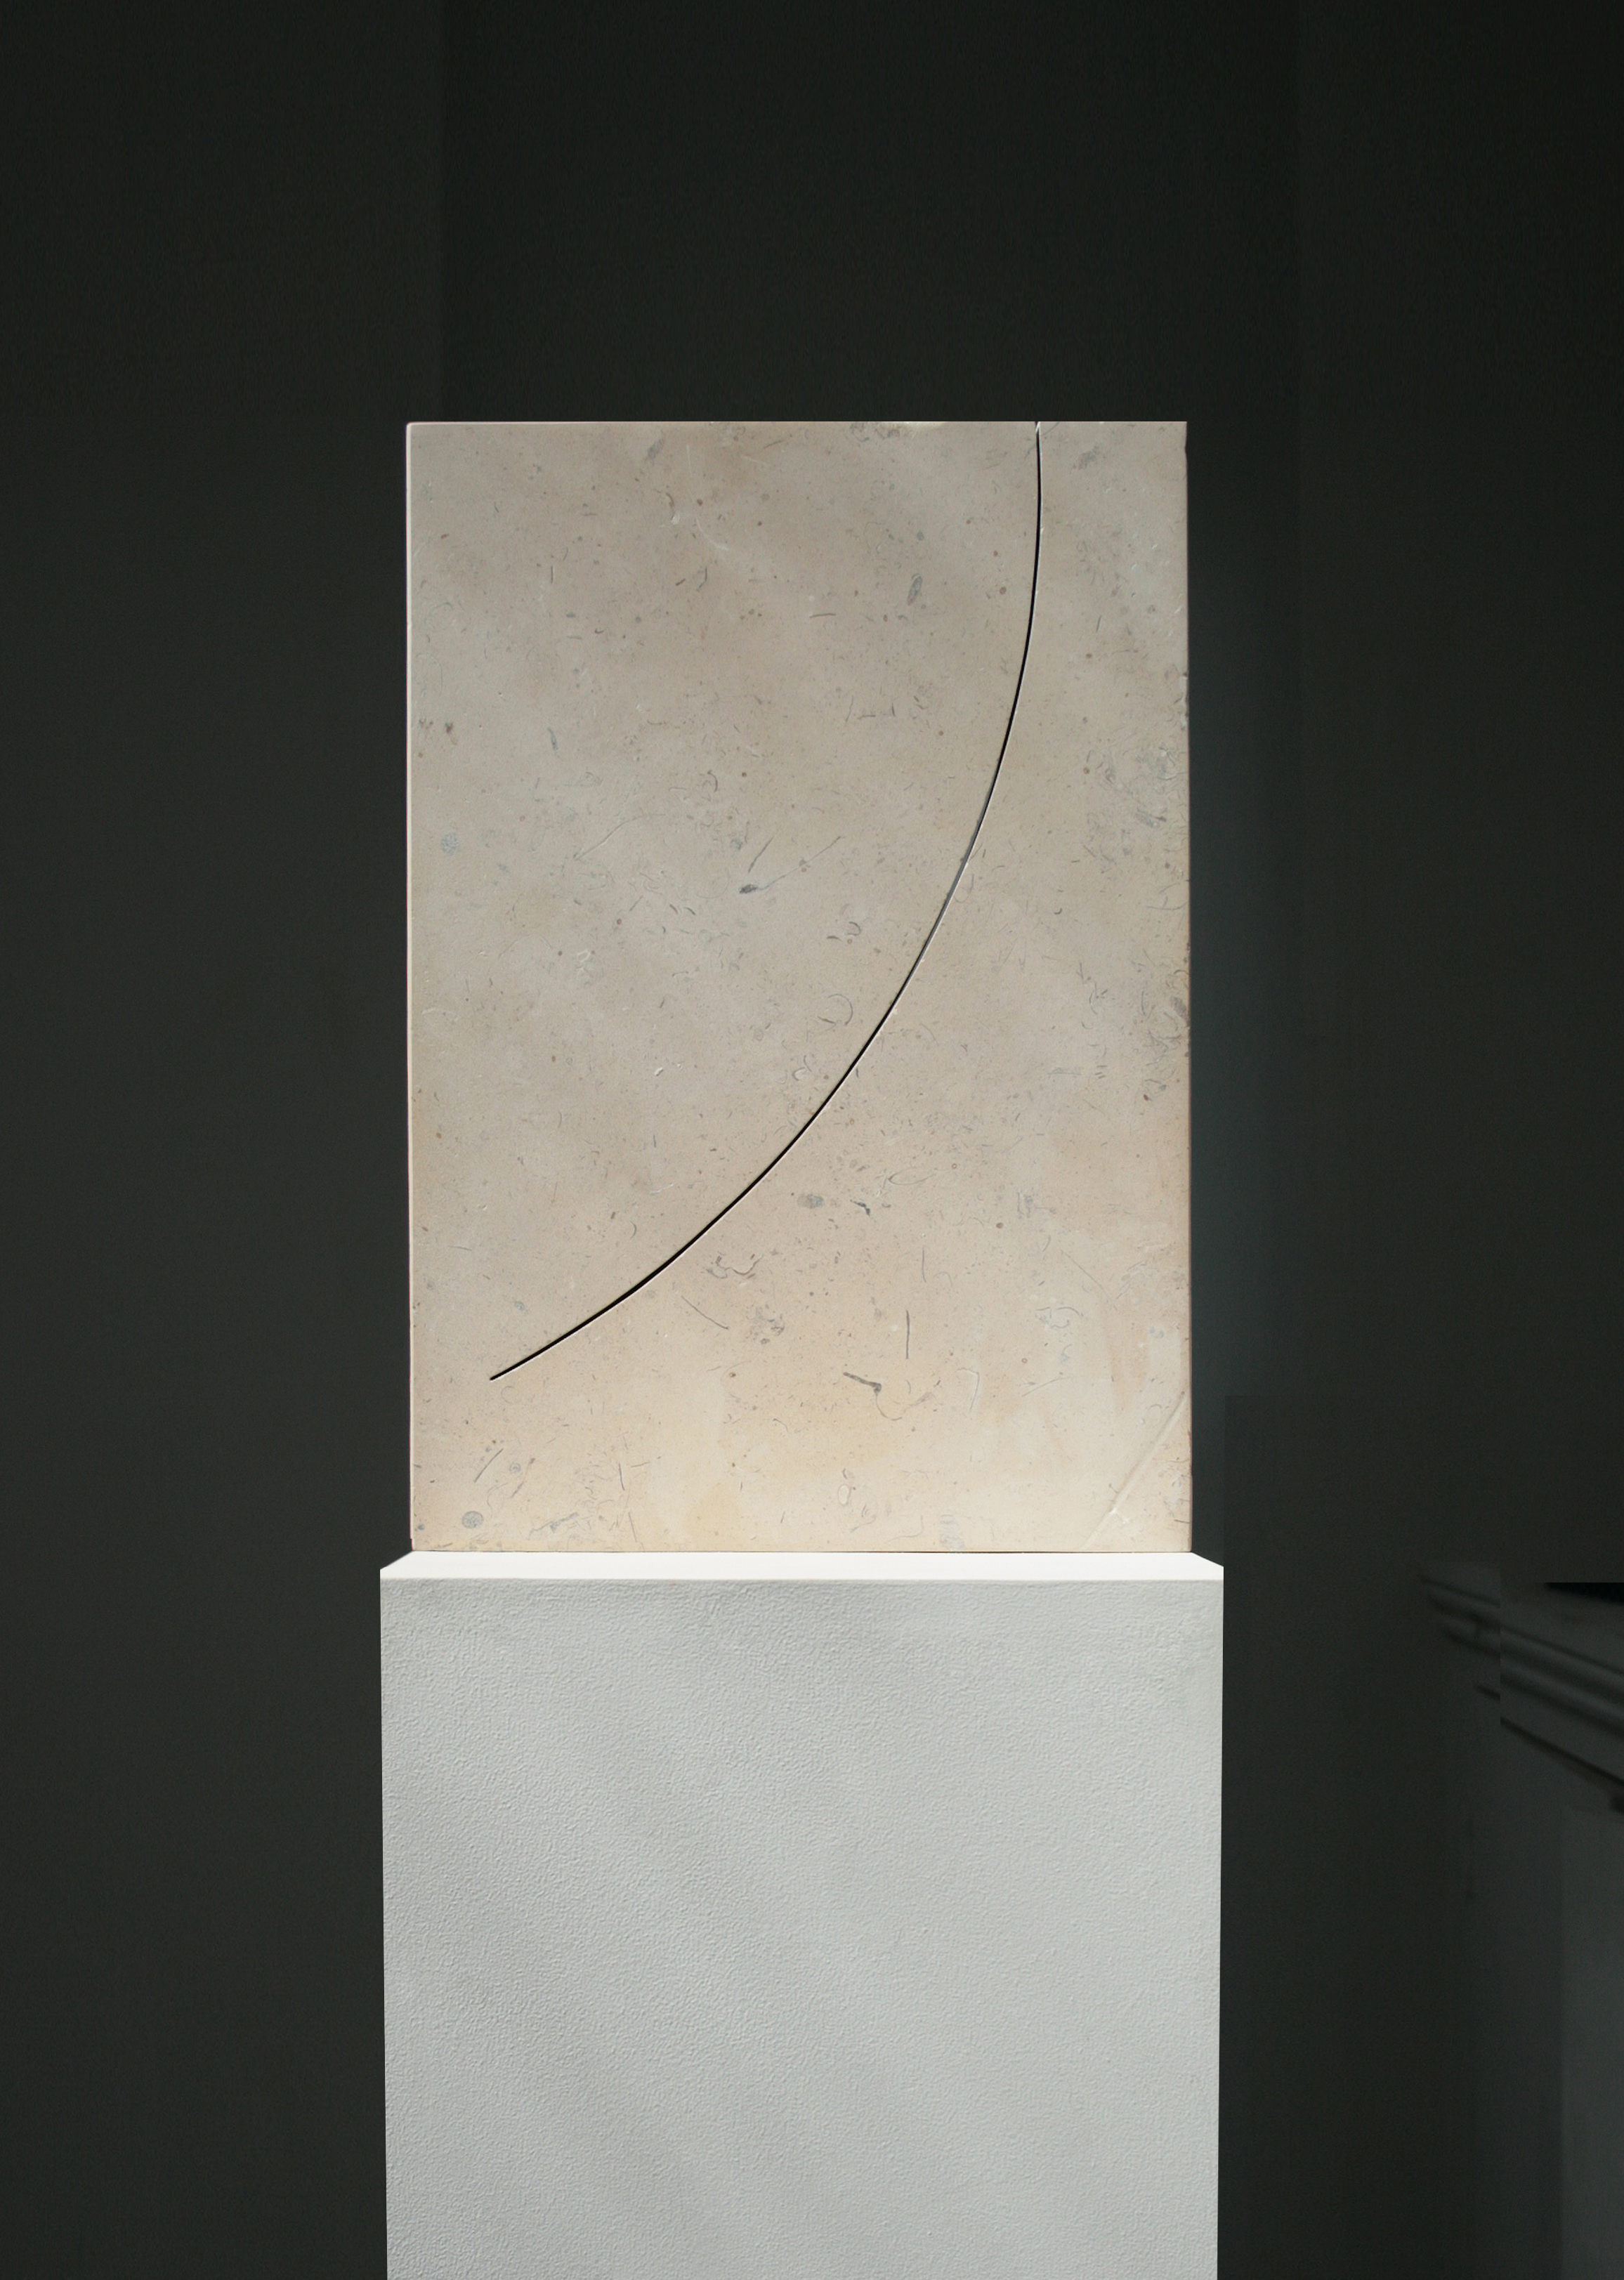 A PURE UNTROUBLED LINE IV  (after Iris Murdoch)  2019  Lincolnshire limestone – silver bed  34.5 x 23.5. x 4.0 cm